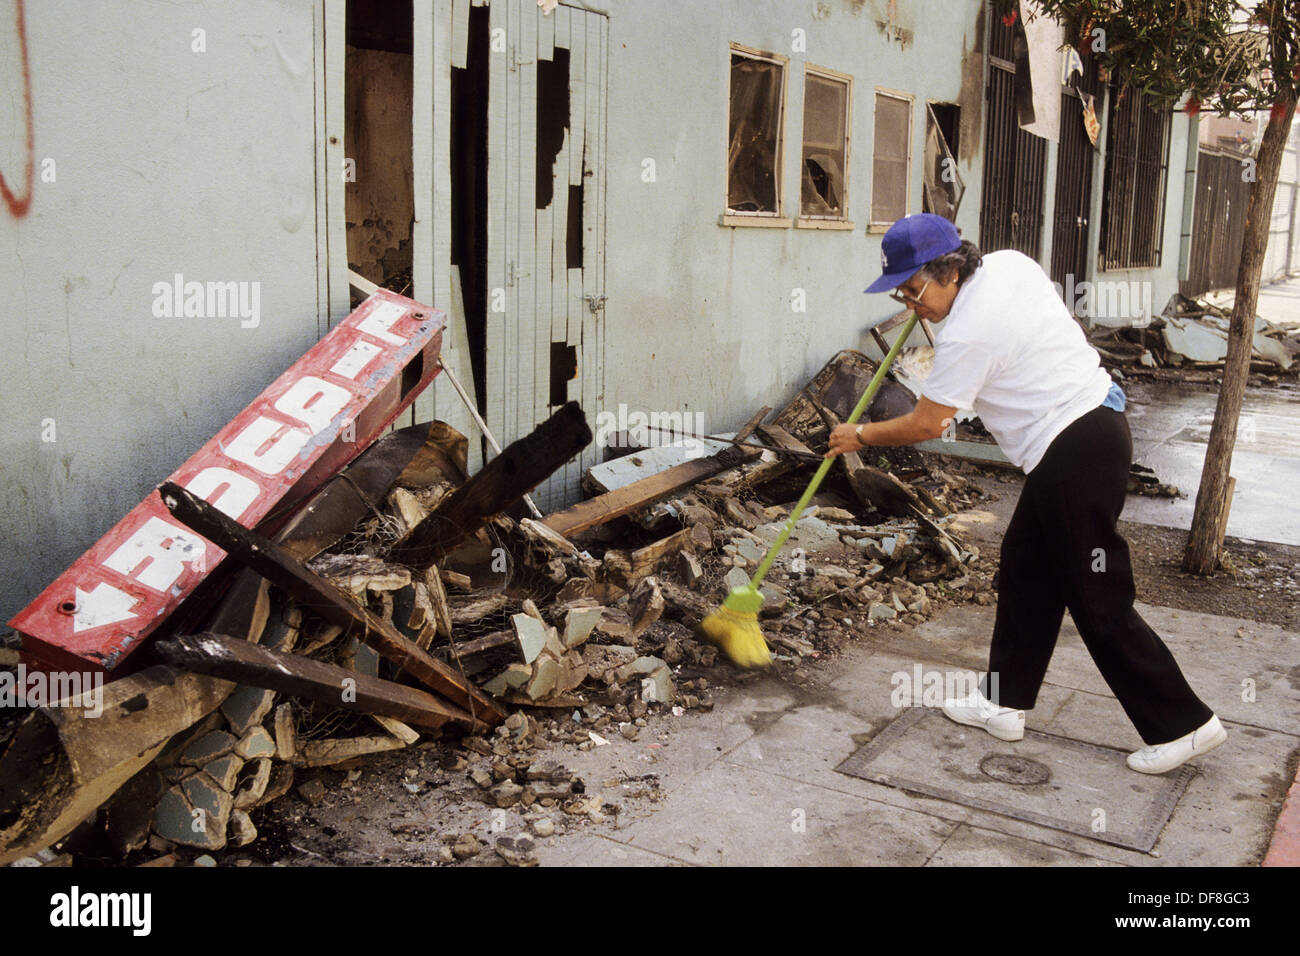 Scene from aftermath of Los Angeles Riots, 1992. California. USA - Stock Image